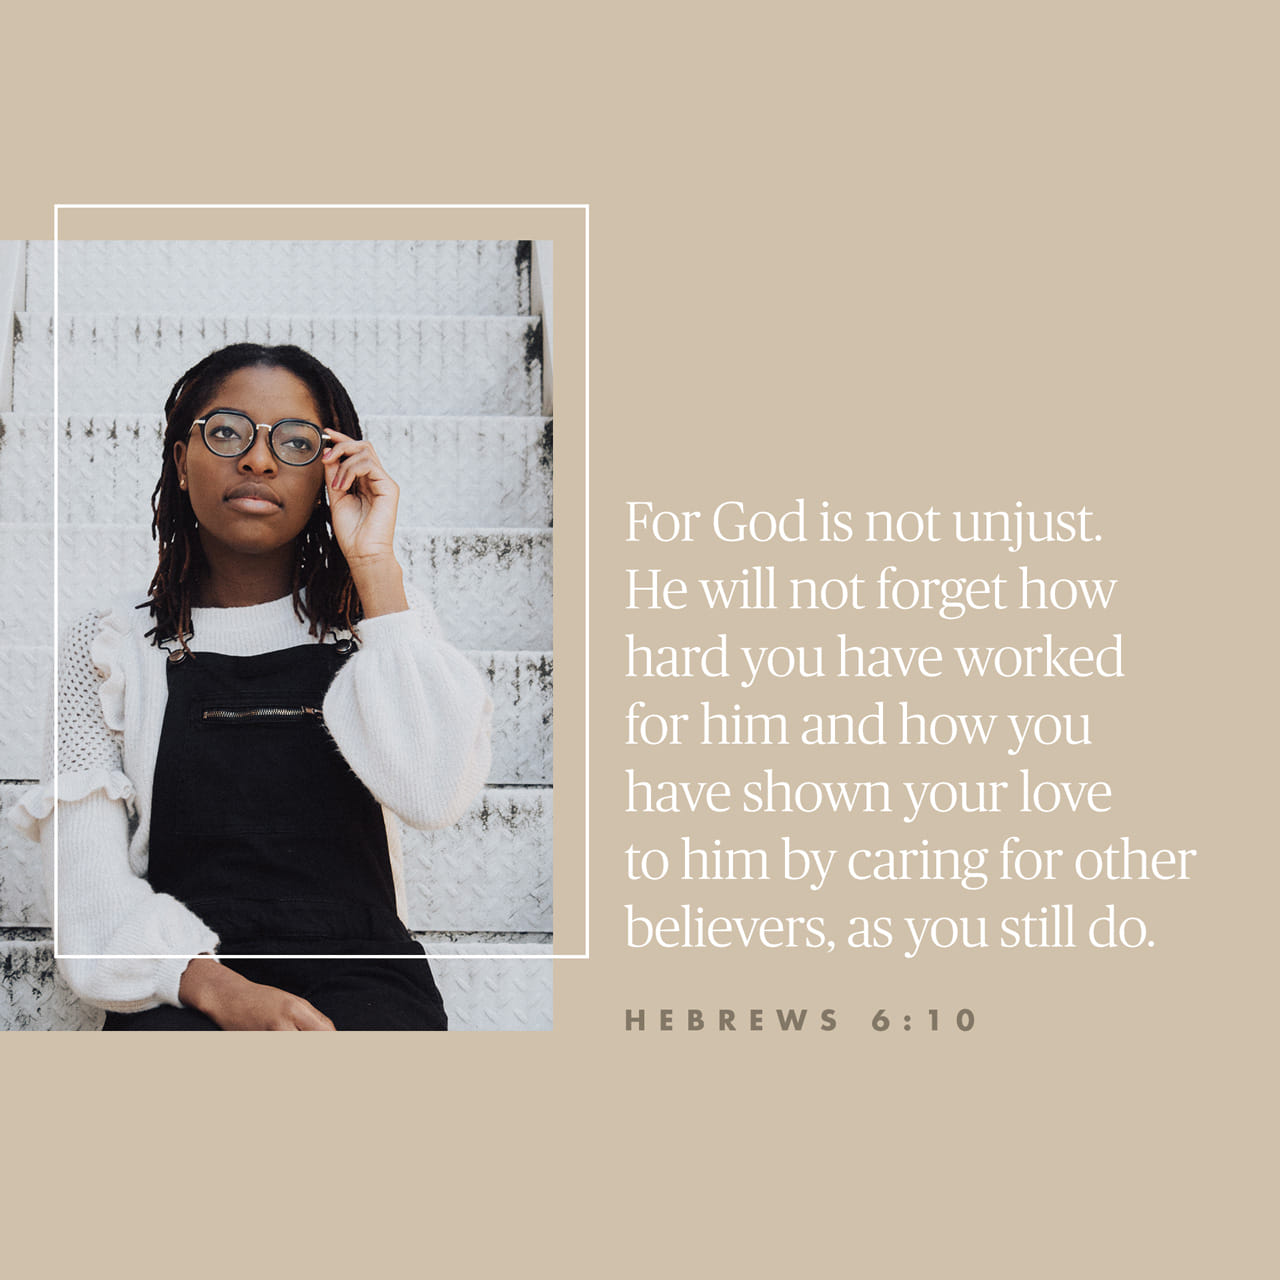 Hebrews 6:10 For God is not unrighteous to forget your work and labour of love, which ye have shewed toward his name, in that ye have ministered to the saints, and do minister. | King James Version (KJV)